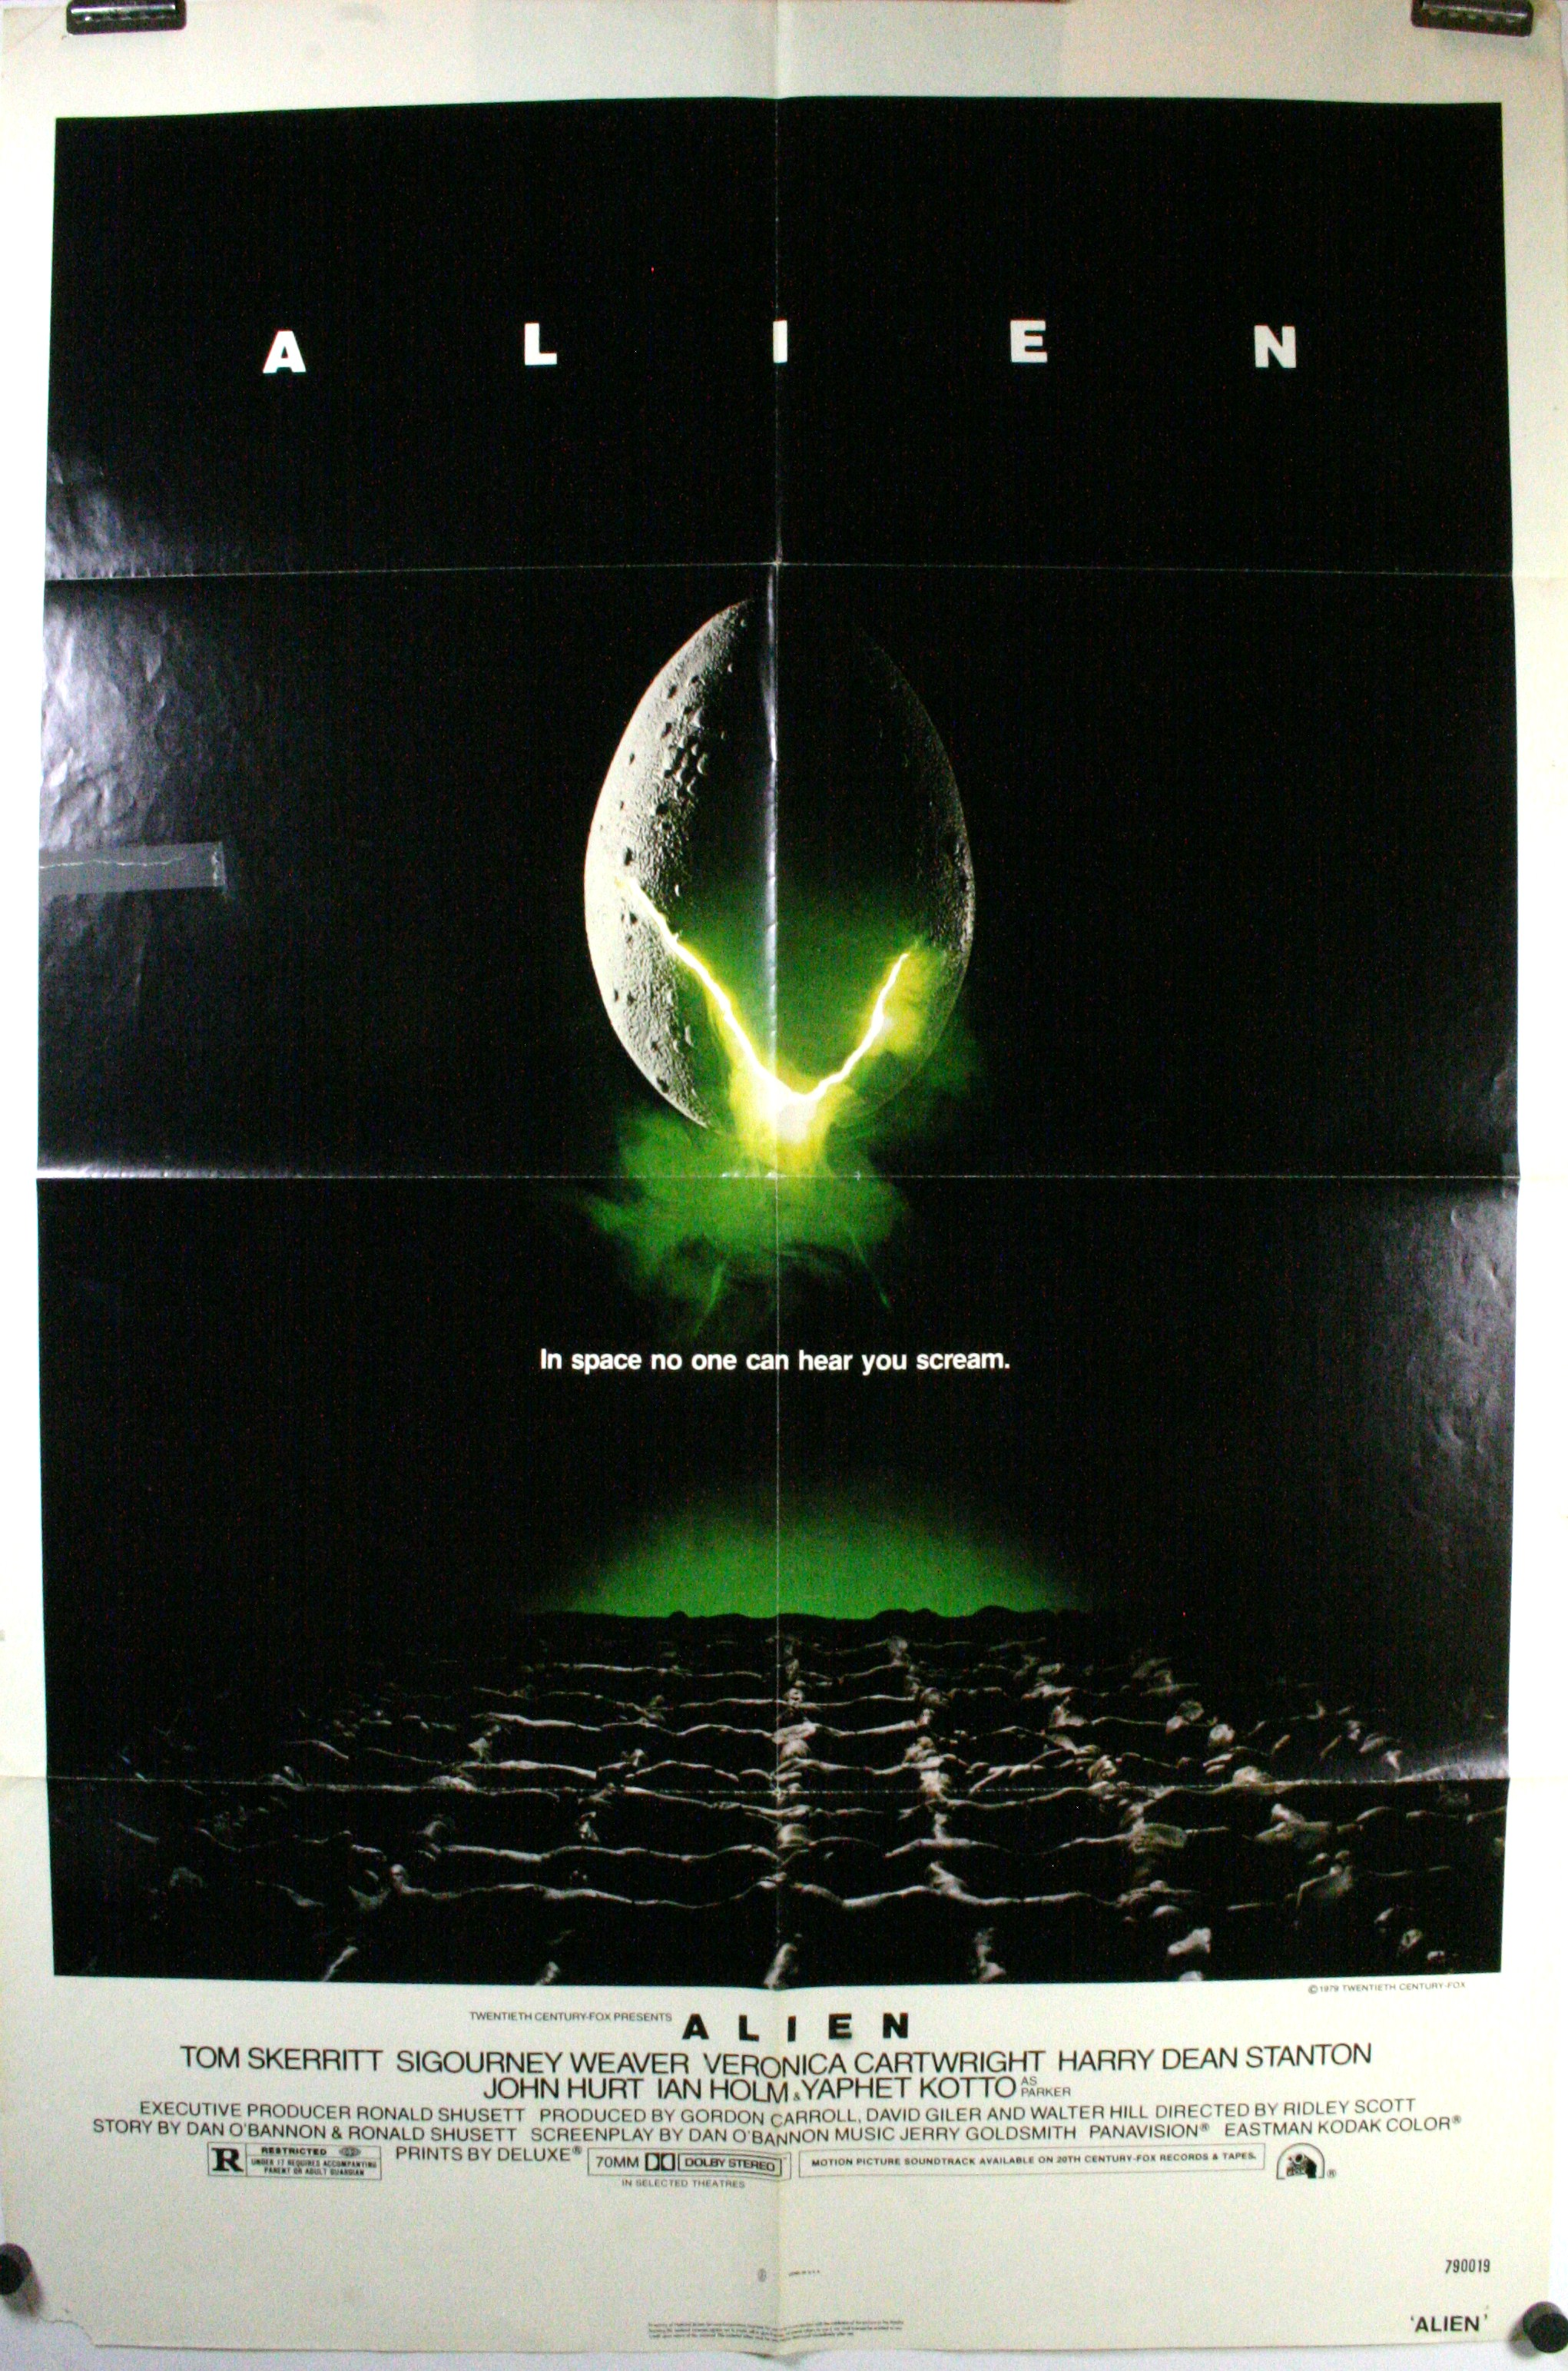 alien movie poster original - photo #2